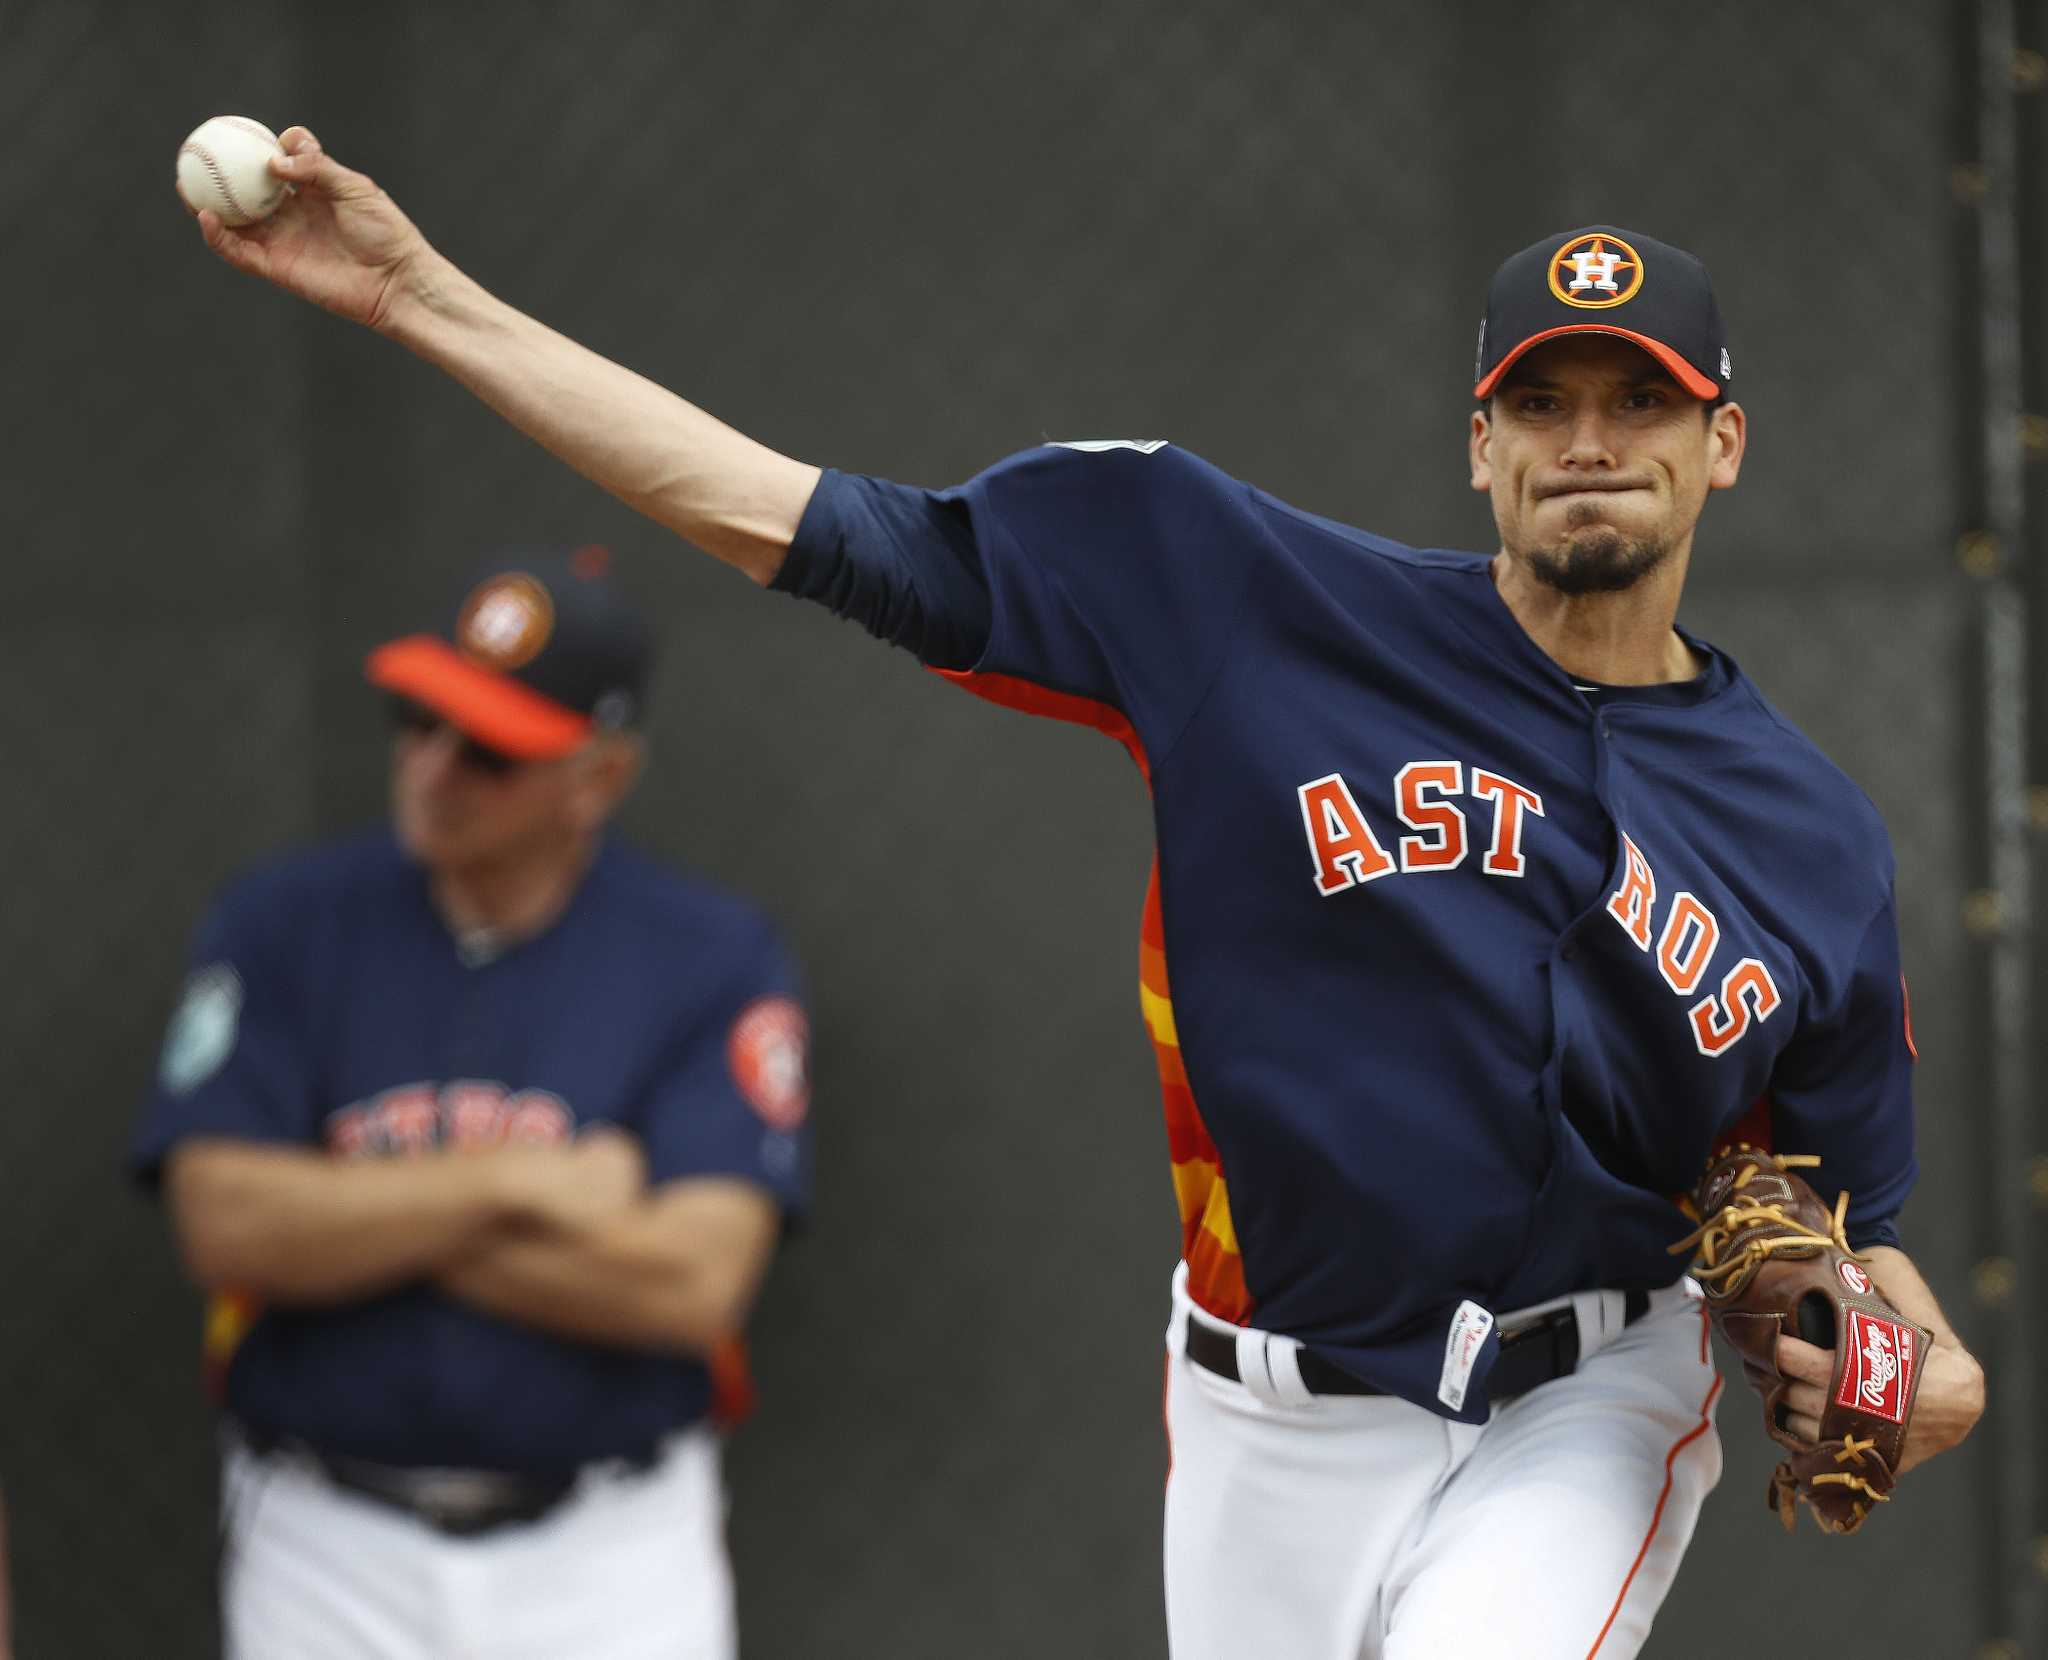 charlie morton astros houston pitcher extra eager zip warren karen staff photographer outing inning solid fastball sustainable